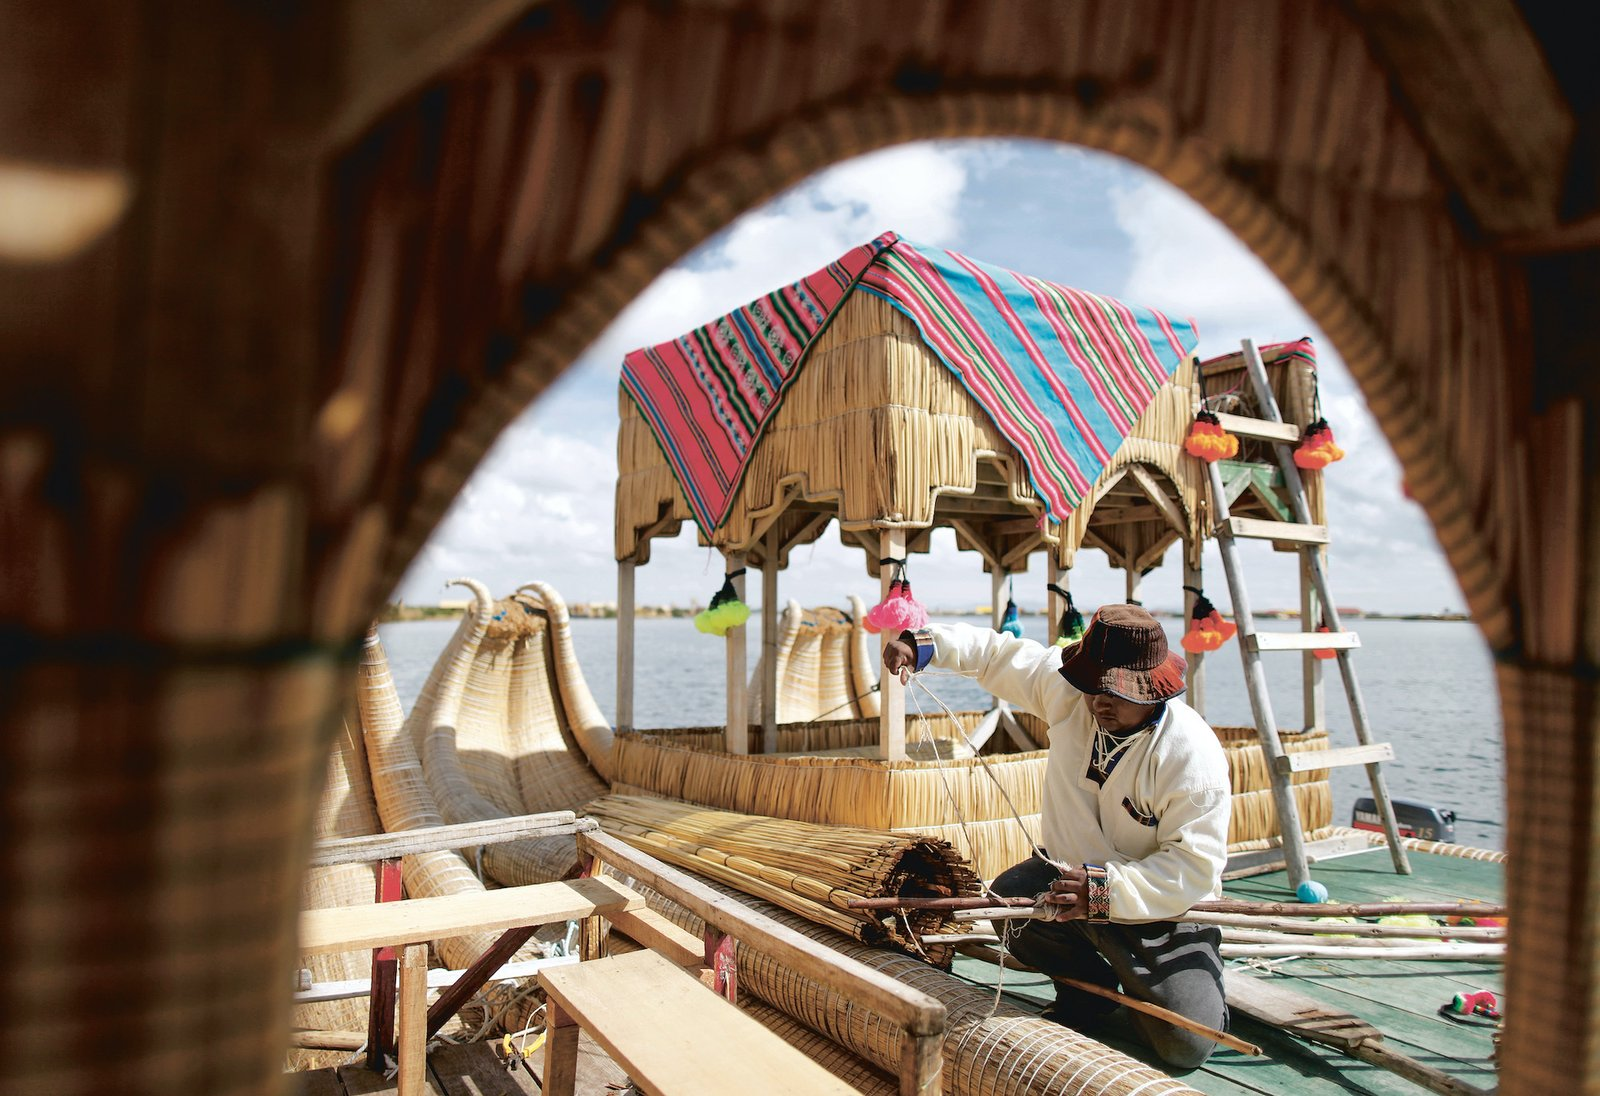 The Uros have built their entire civilization—including the islands and all structure—from the locally grown totora reed. Today, the 4,500-year-old Uros civilization survives dependent upon tourism.  Photo 7 of 8 in We May Already Have the Technology to Survive a Climate Crisis—We've Just Been Ignoring It